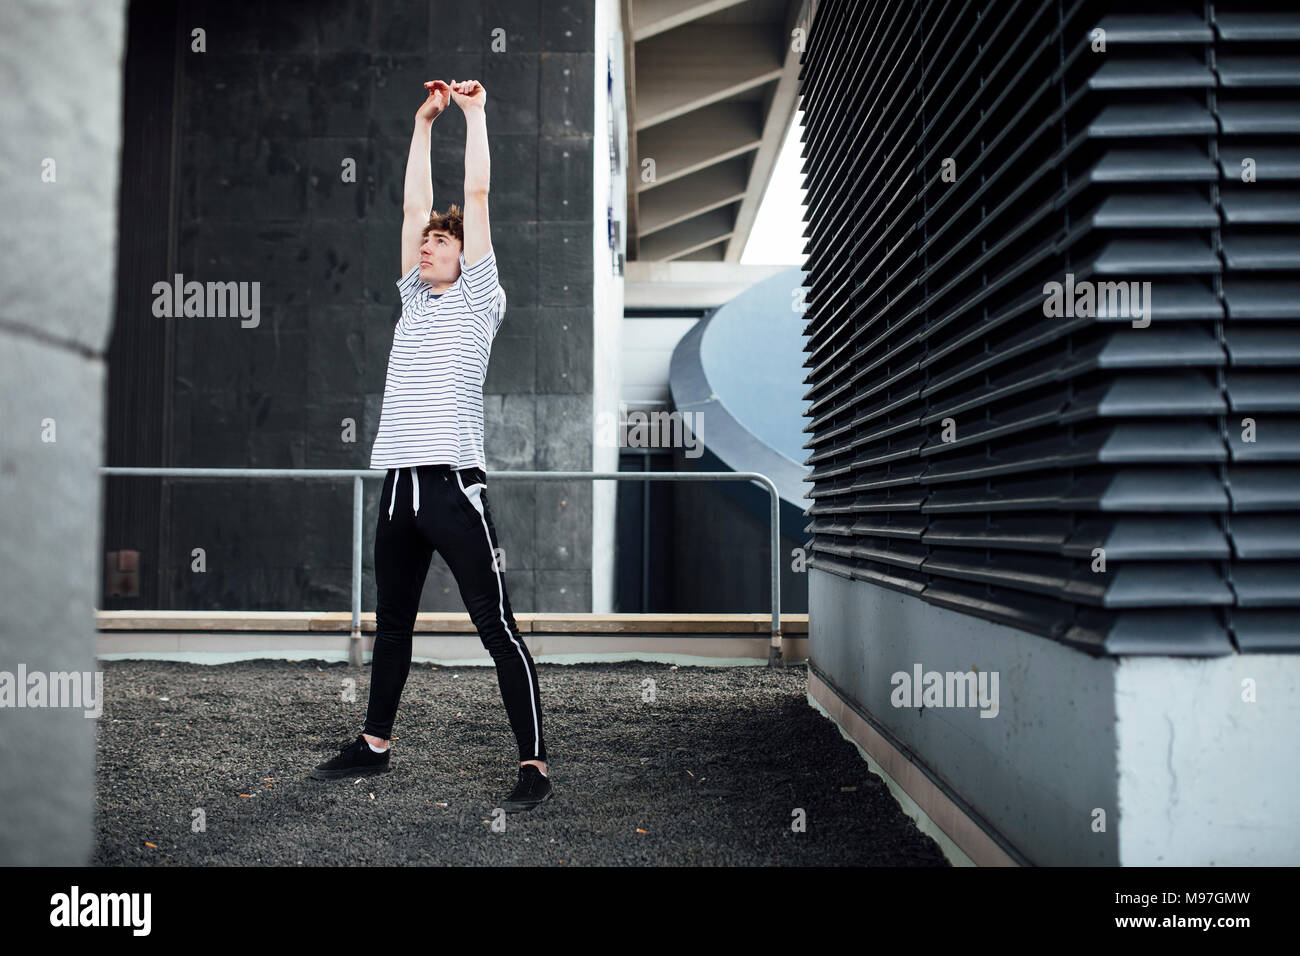 Freerunner is stretching on a rooftop. - Stock Image